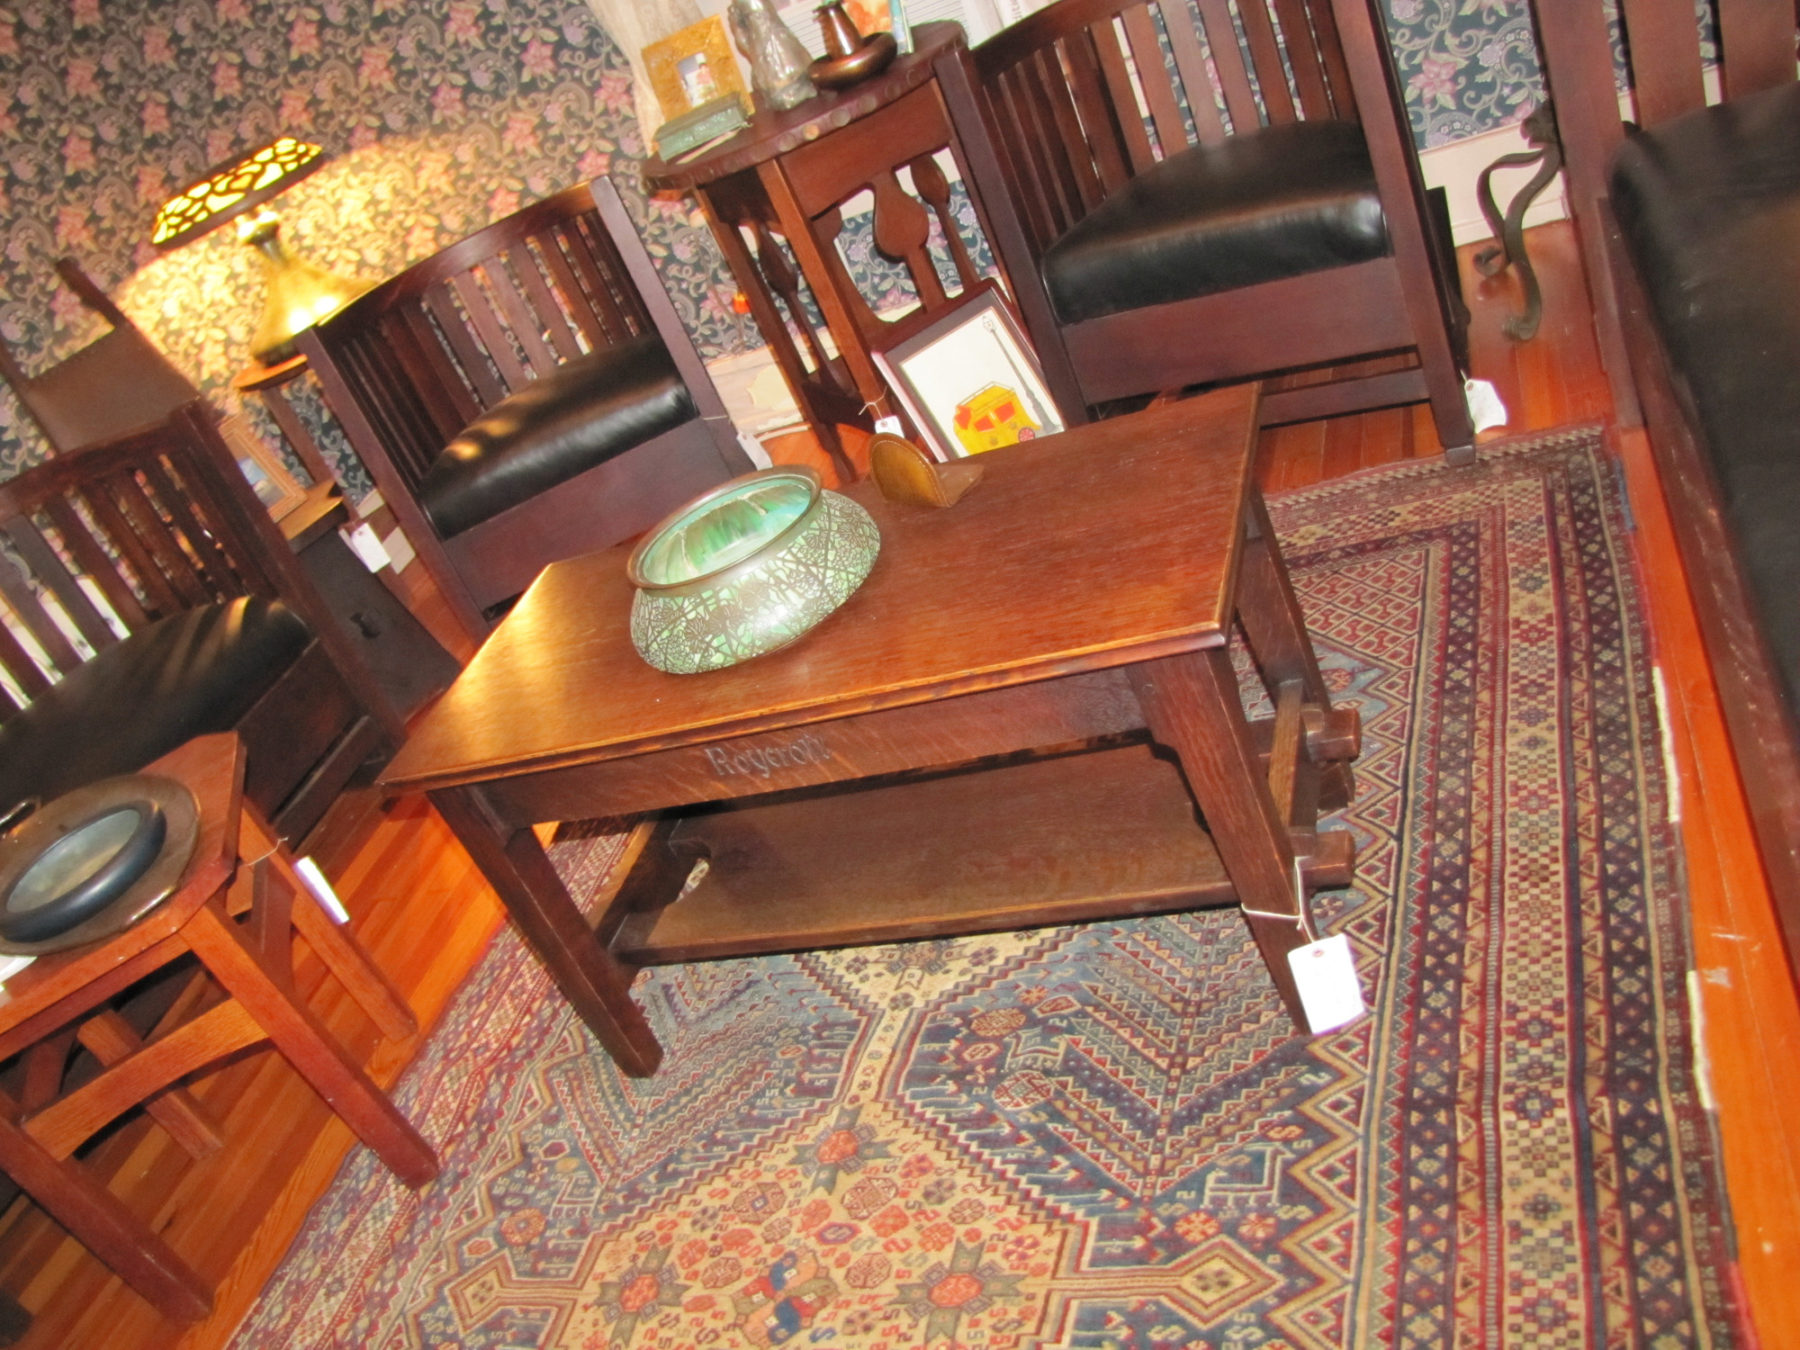 Home » Shop » Antique Furniture » Roycroft » Superb Antique Roycroft Bench  W2716